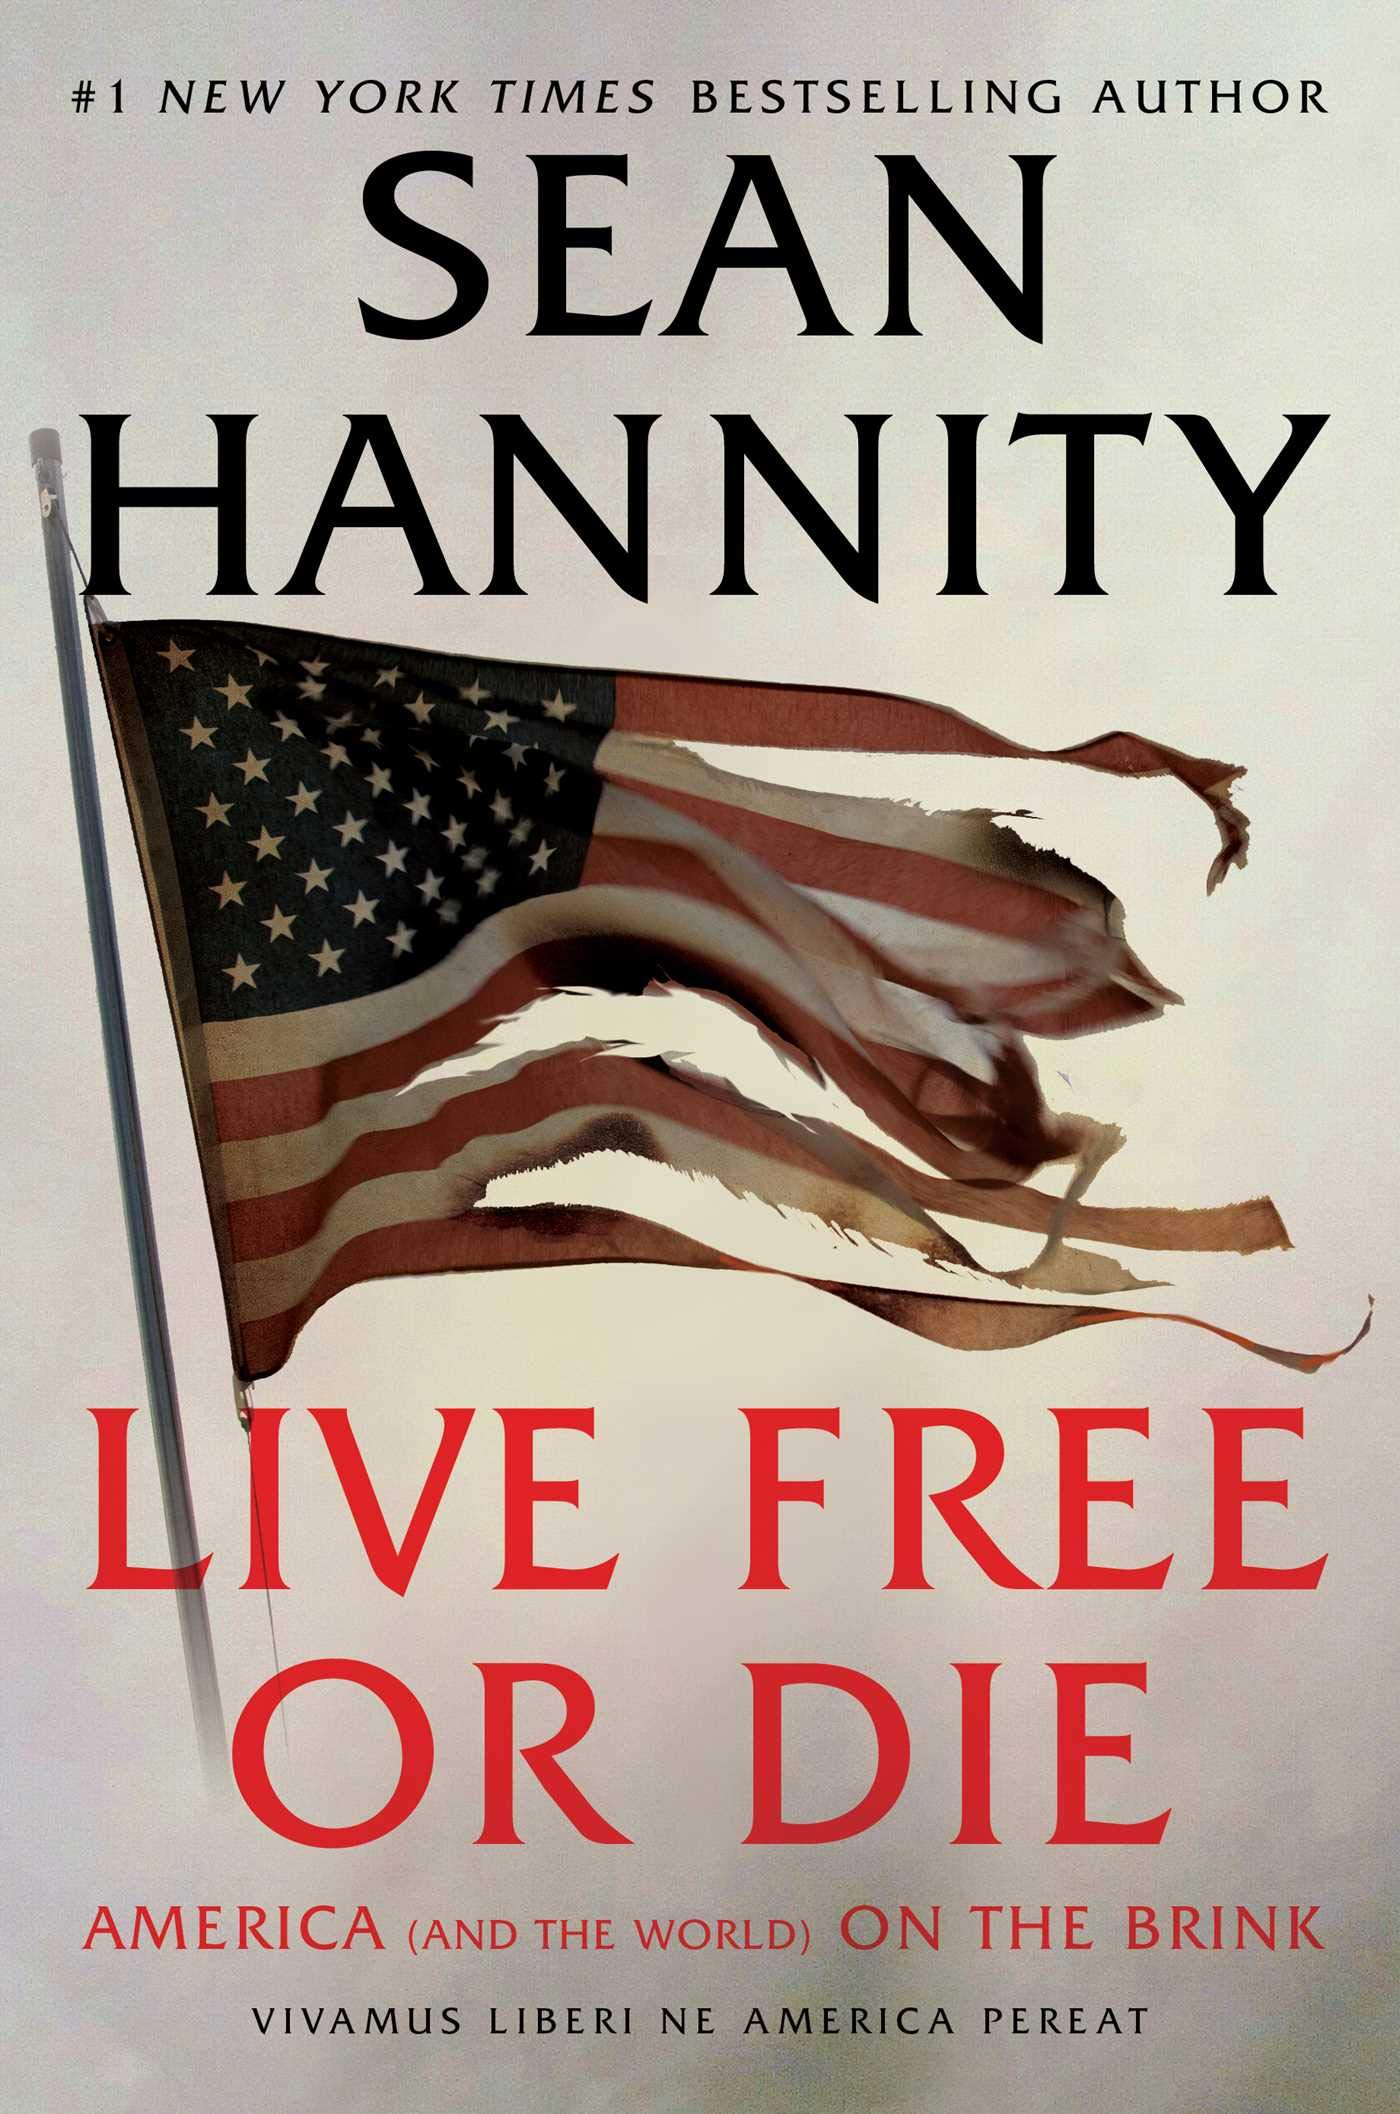 Cover image of Live Free Or Die by Sean Hannity